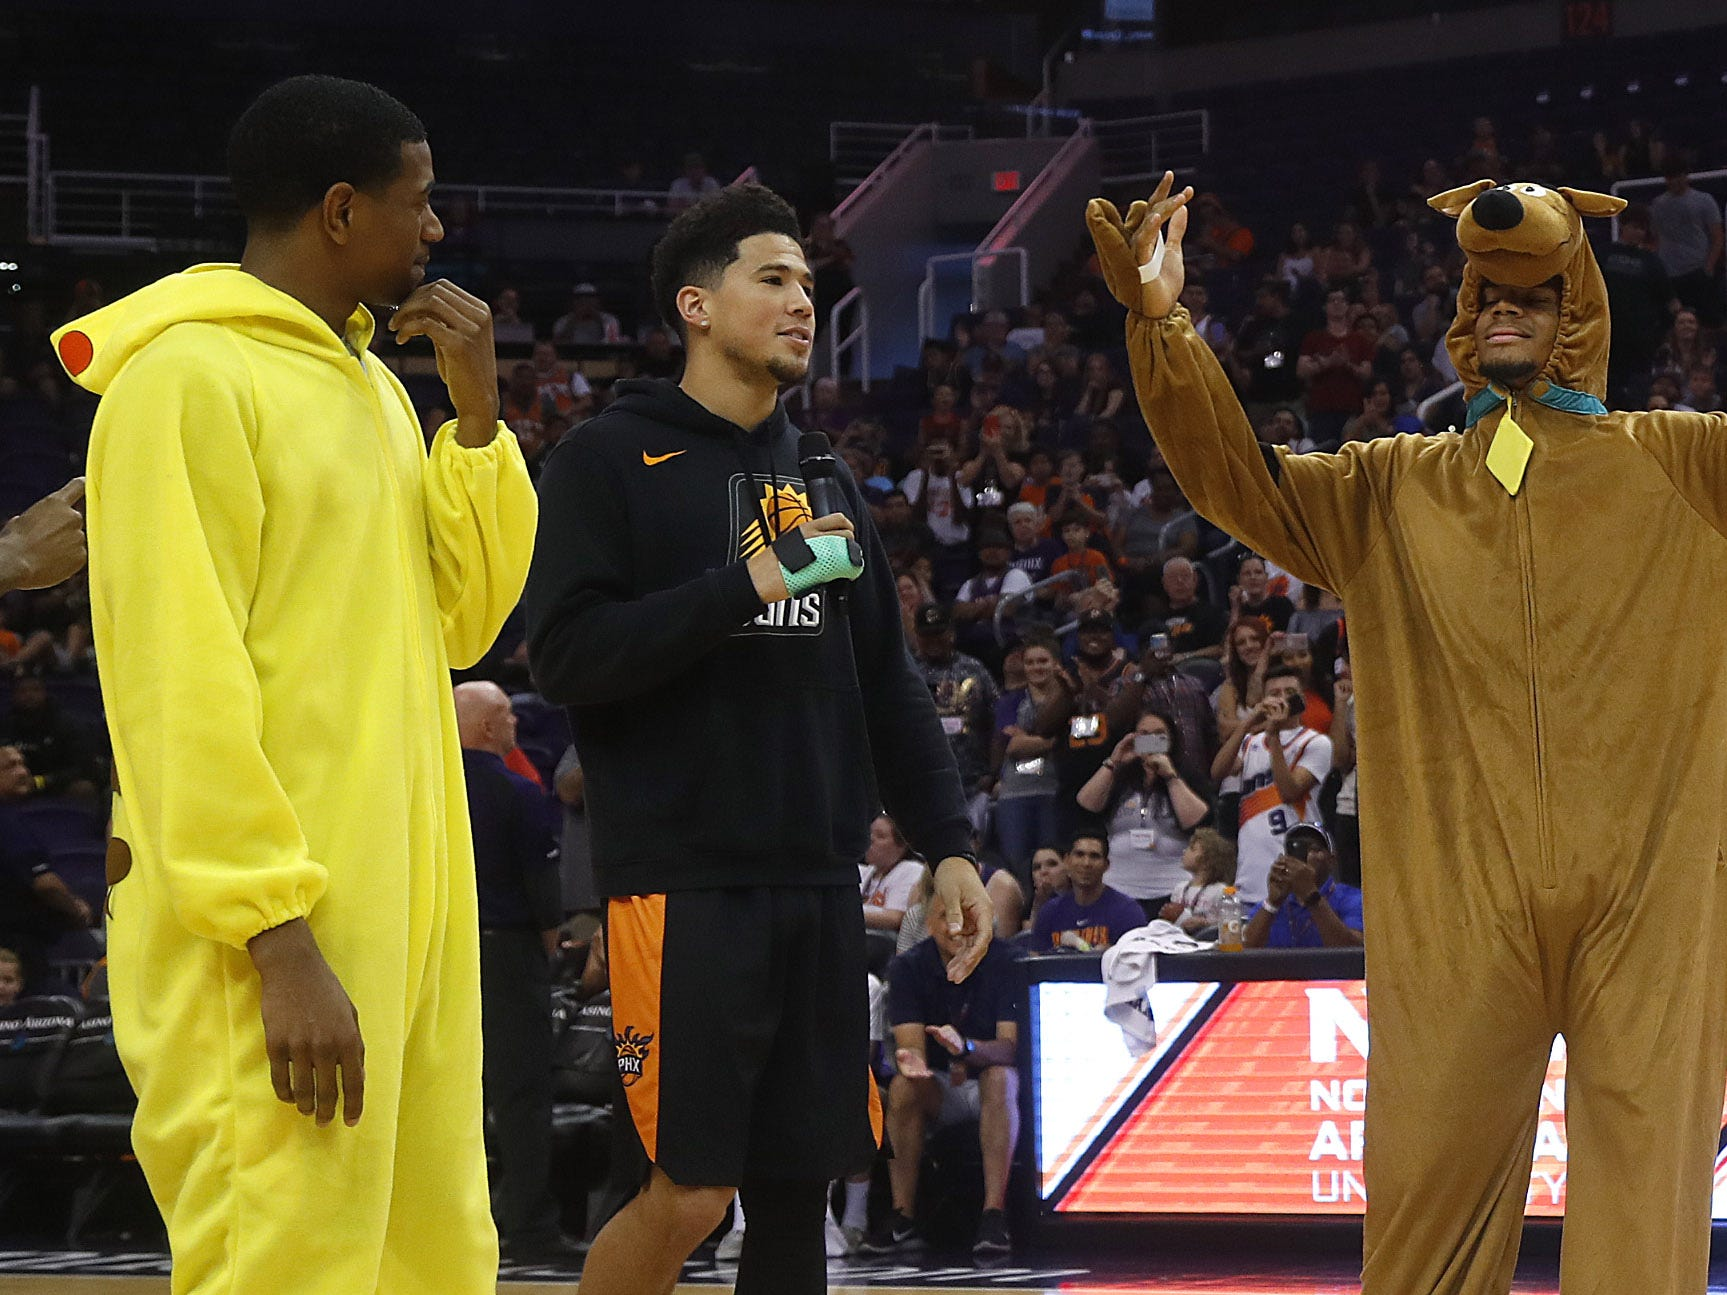 Suns Devin Booker has fans vote between De'Anthony Melton in a pikachu costume and Elie Okobo in a Scooby Doo costume after a dance-off during an Open Practice at Talking Stick Resort Arena in Phoenix, Ariz. on Sept. 29, 2018.